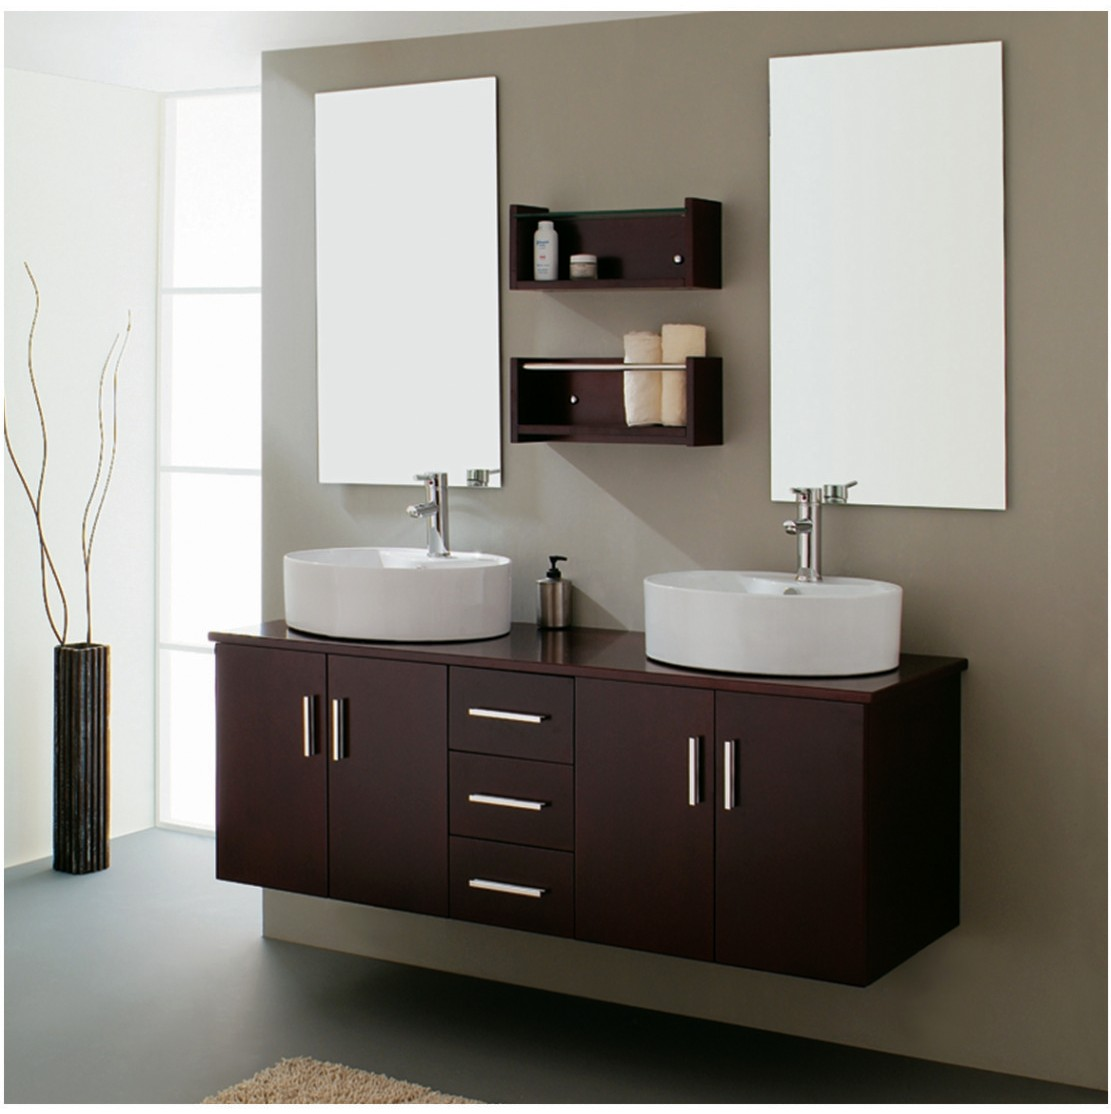 bathroom vanities milano iii modern bathroom vanity set 59 tweet